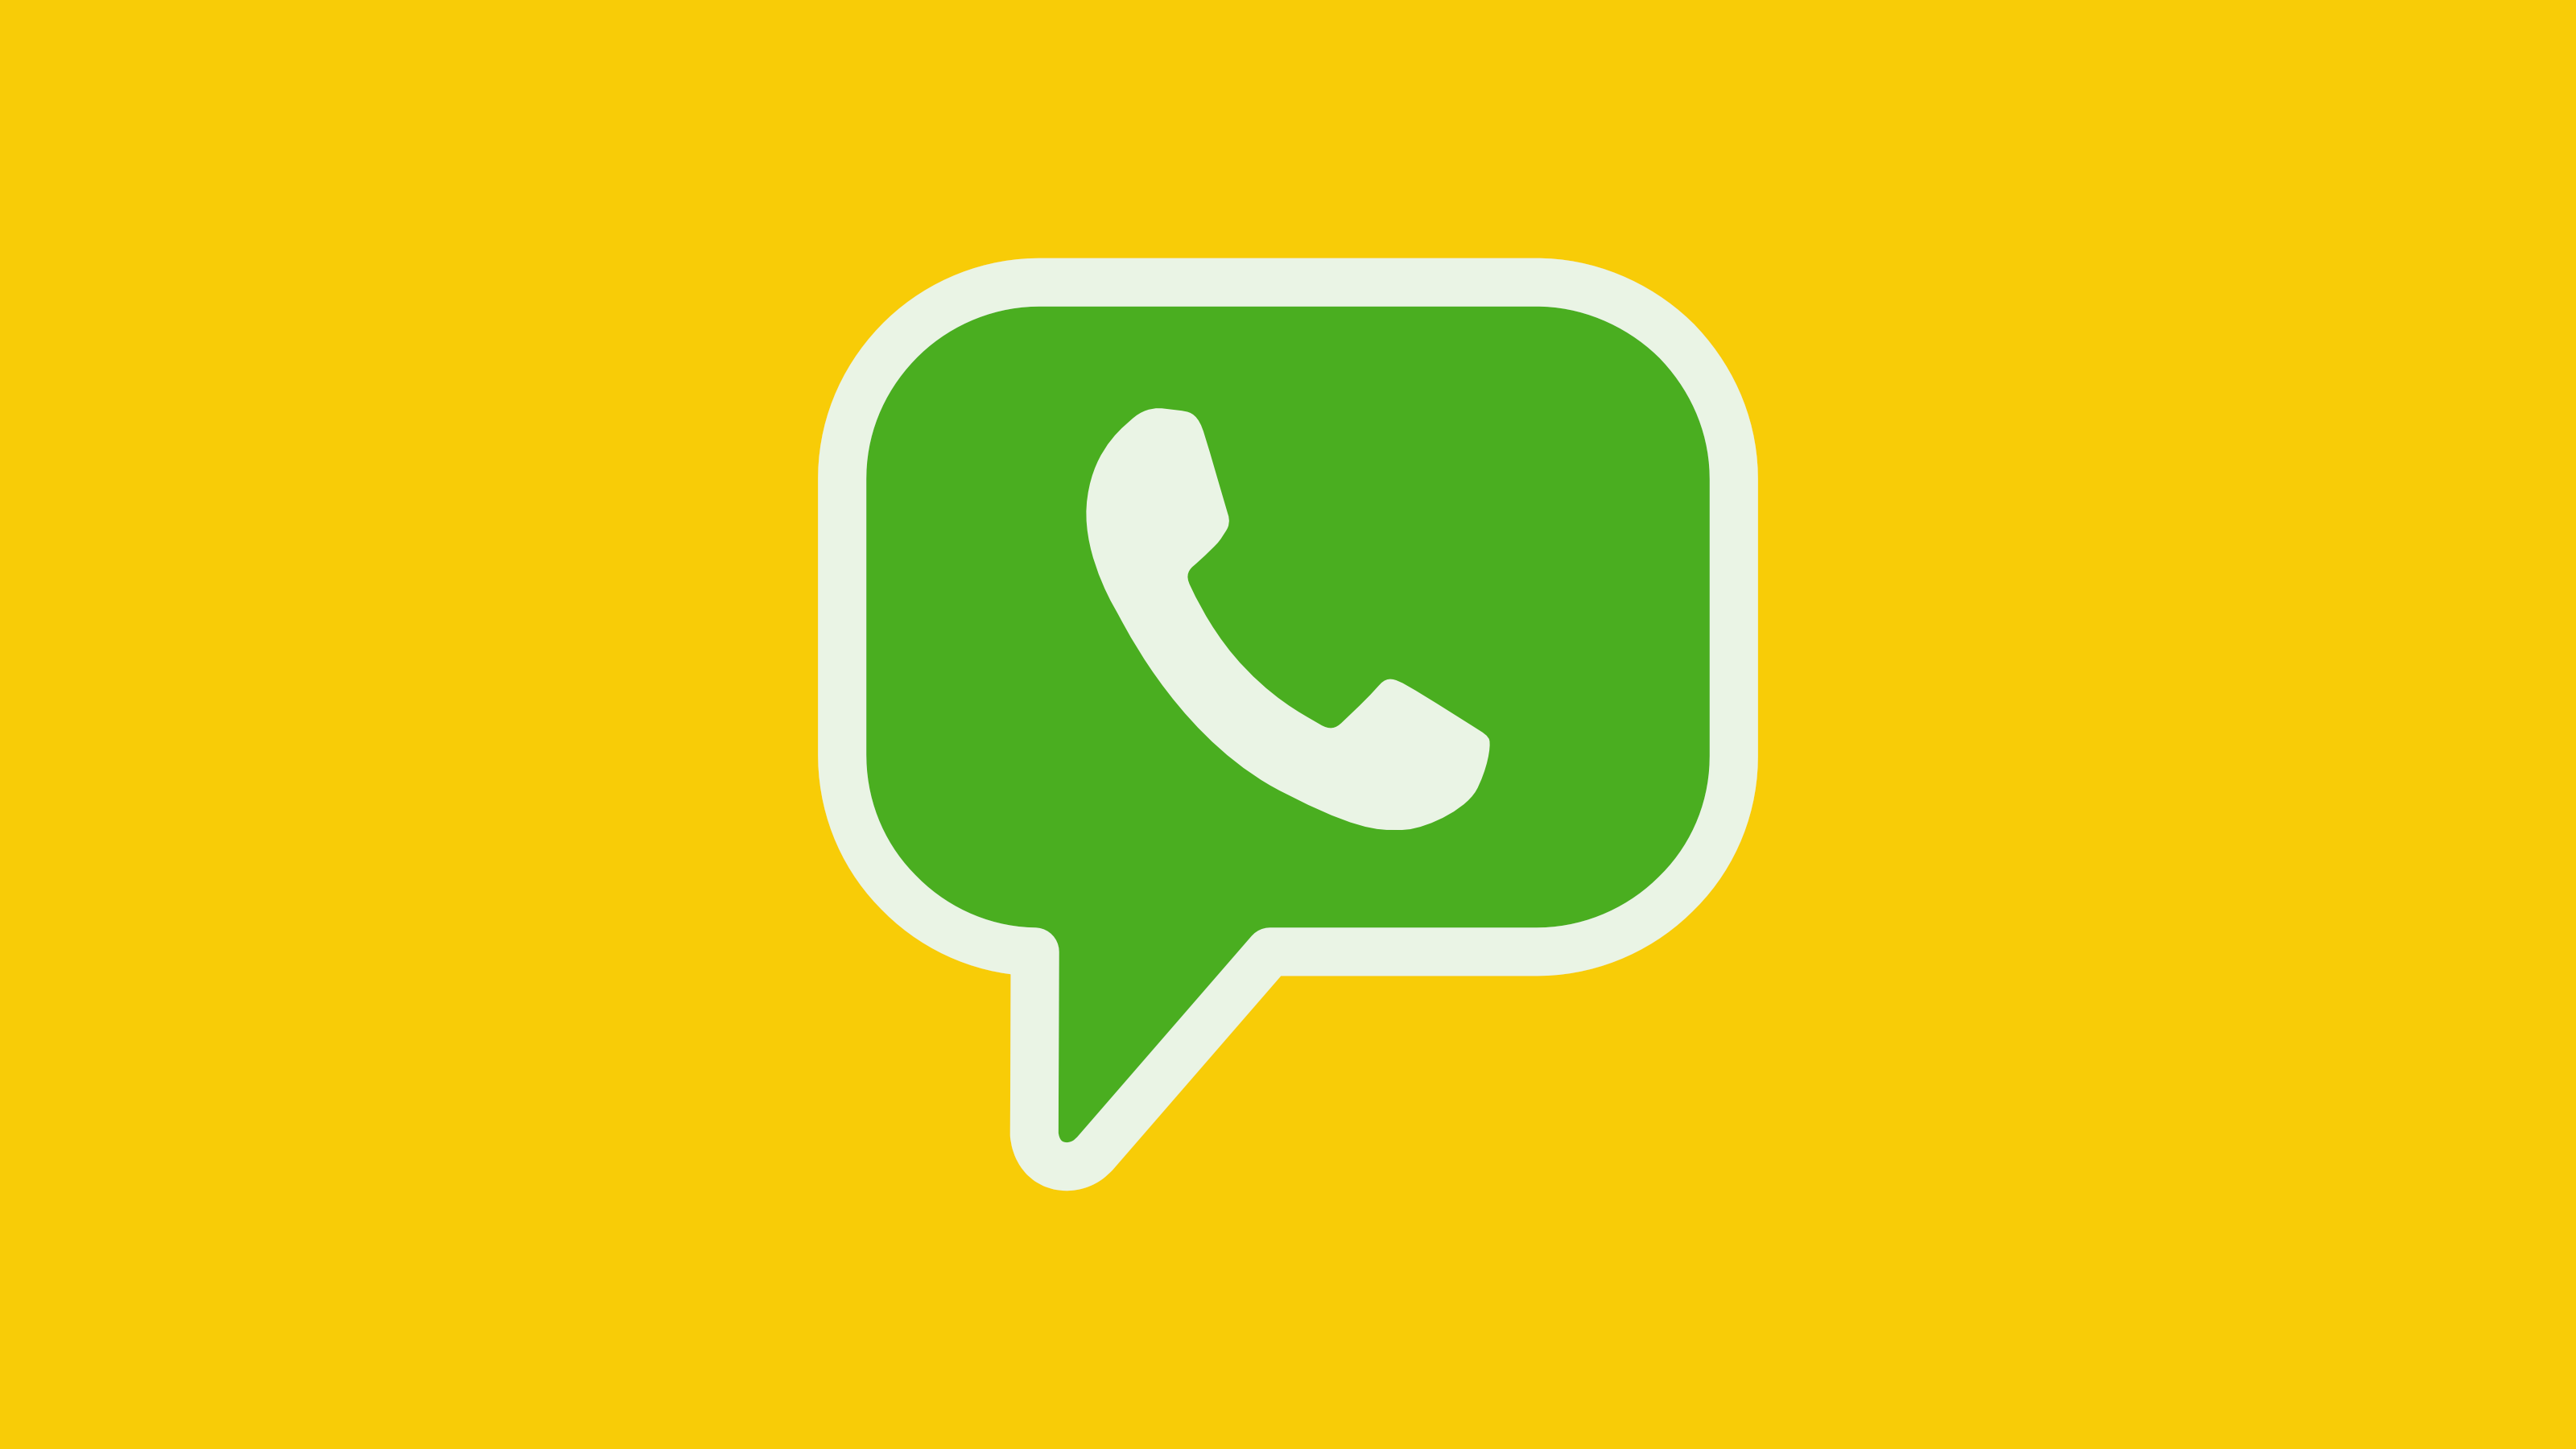 WhatsApp Business API: What's the status for WhatsApp